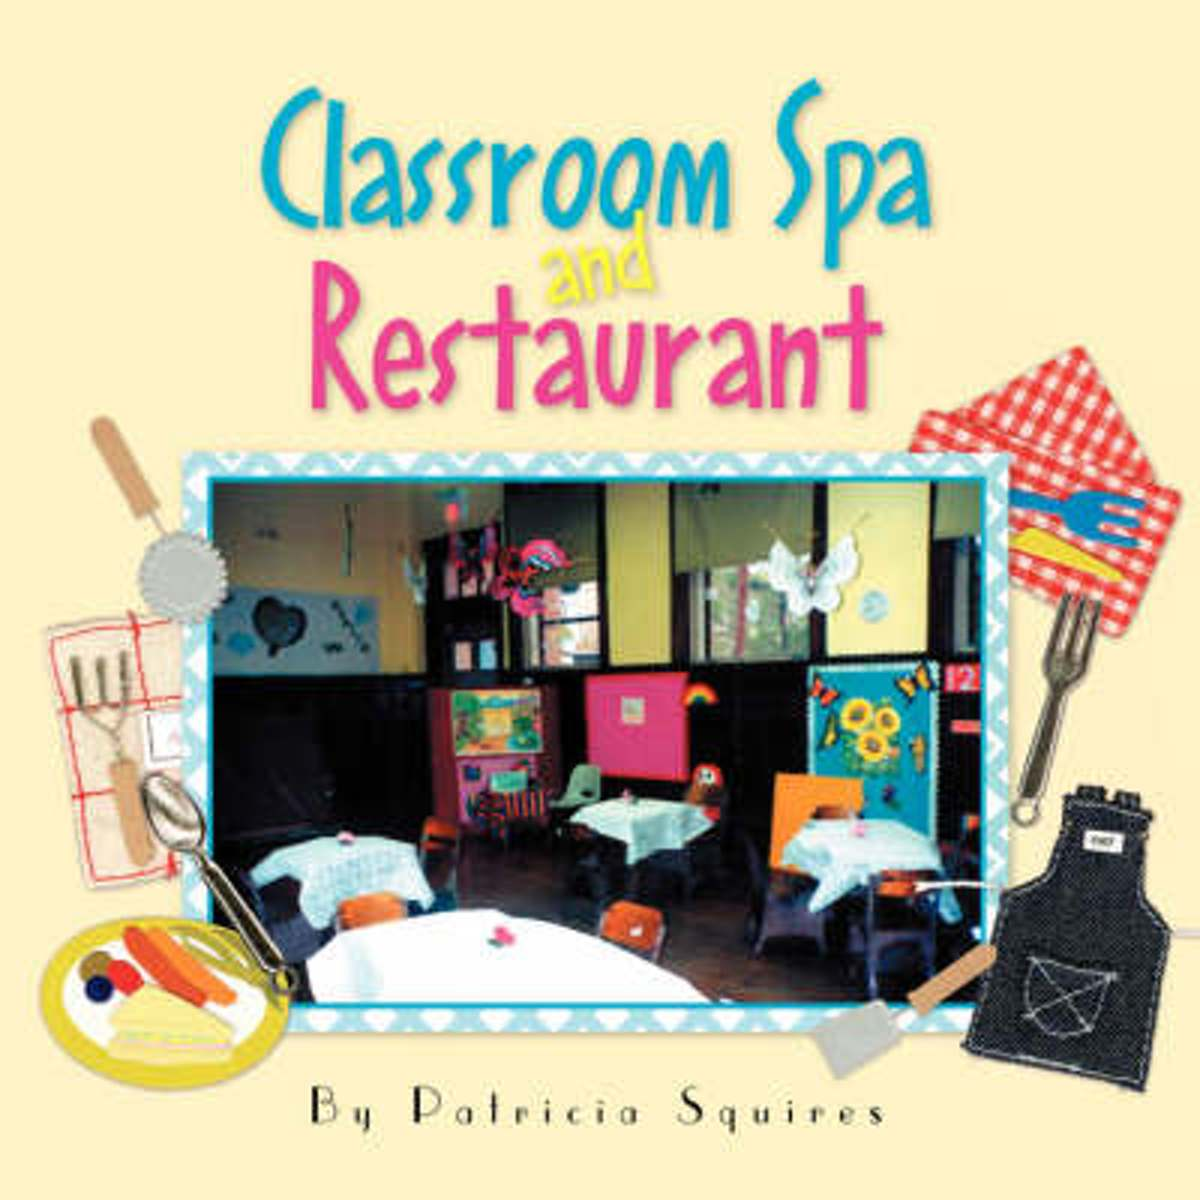 Classroom Spa and Restaurant